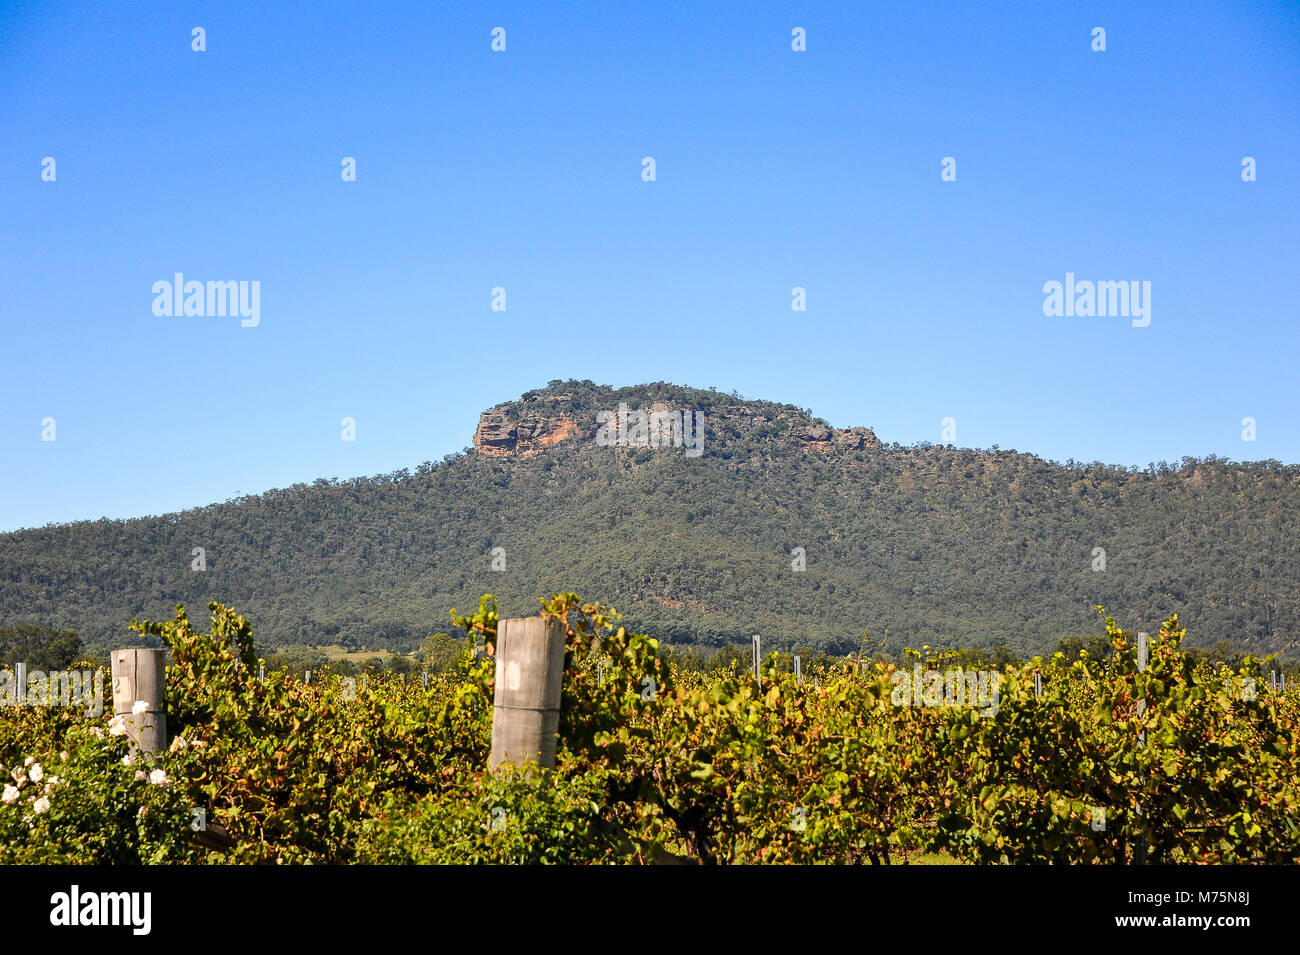 Vineyards and mountain landscape in clear blue sky. Hunter Valley, News South Wales, Australia. - Stock Image